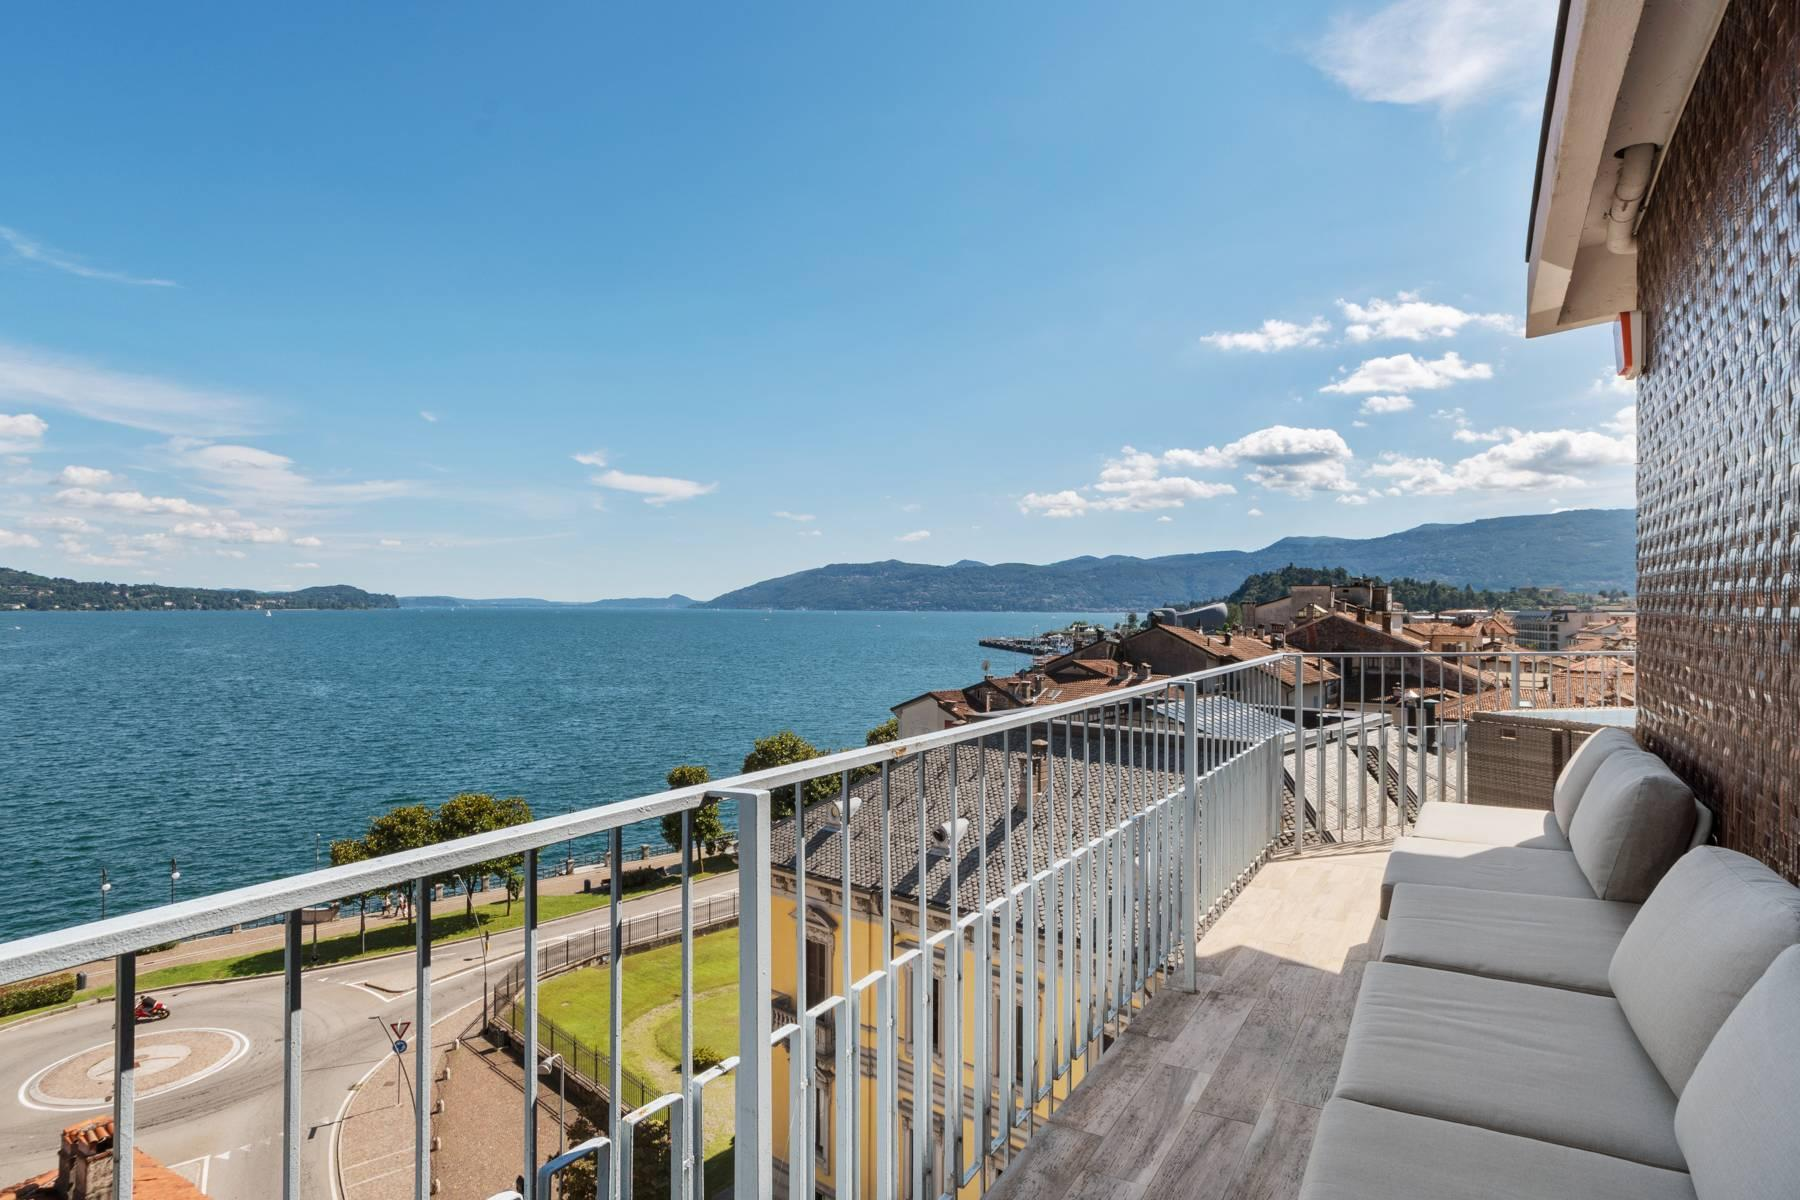 Breathtaking penthouse with balcony and terrace overlooking all the lake Maggiore located in the center of Intra - 2